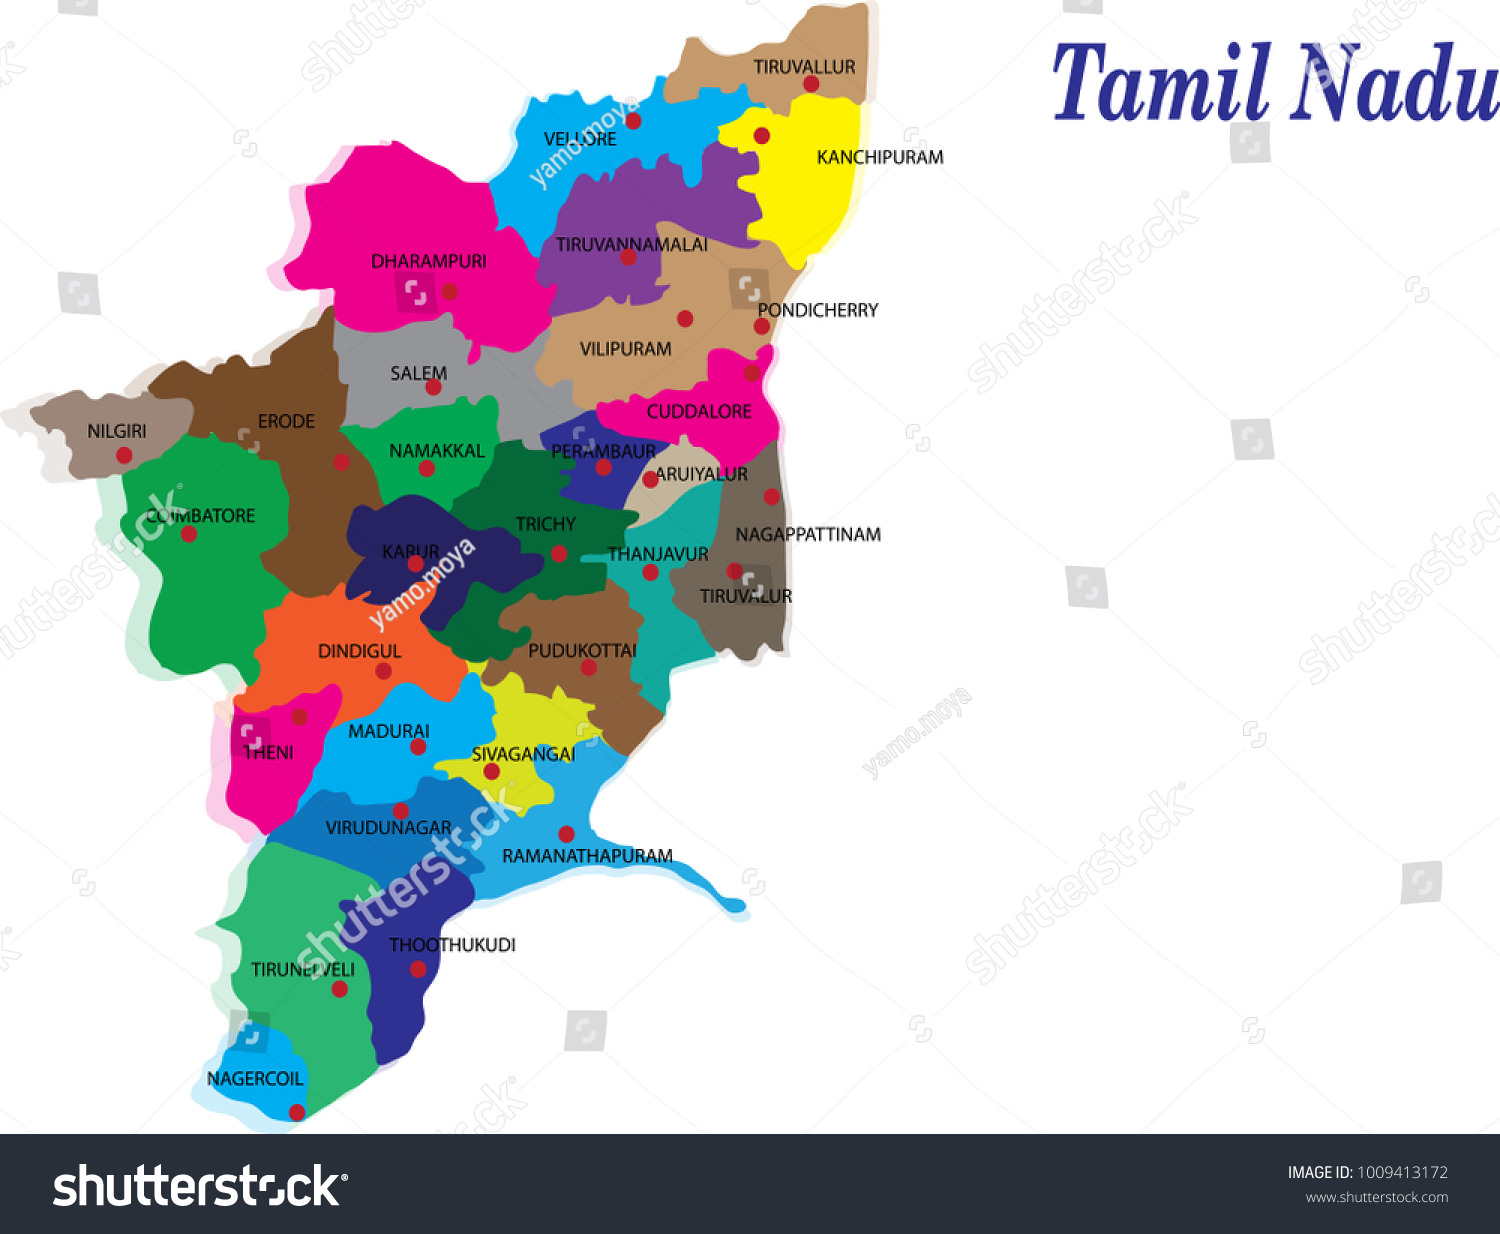 Tamil nadu districts vector map silhouette stock vector 1009413172 tamil nadu districts vector map silhouette illustration isolated on india map gumiabroncs Image collections